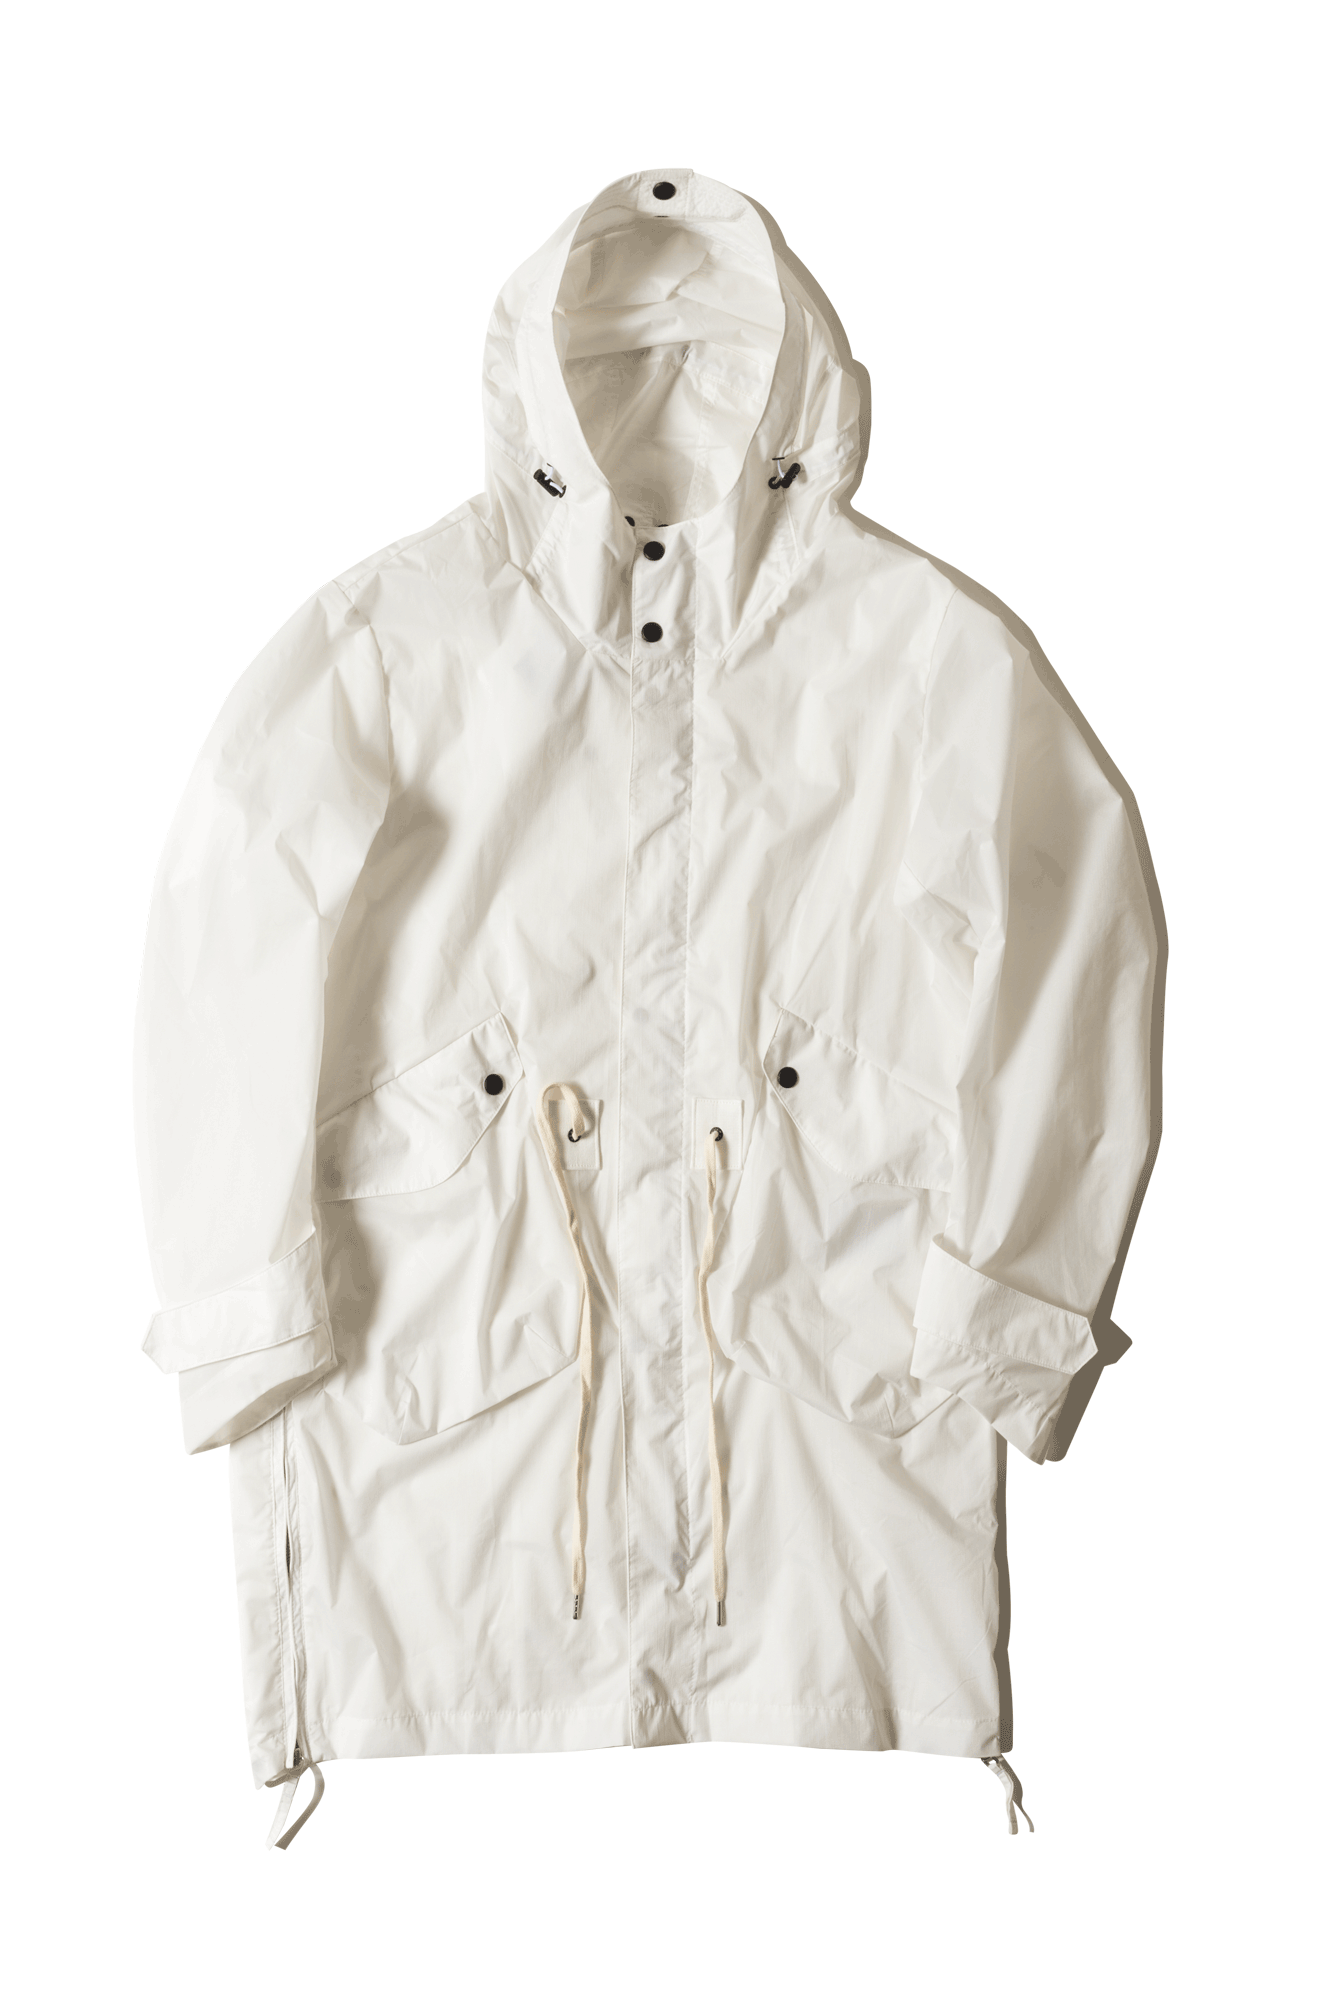 Nilmance Coats & Jackets Water Repellent Fishtail Jacket White FW17PK06#000#WHITE#XS - One Block Down